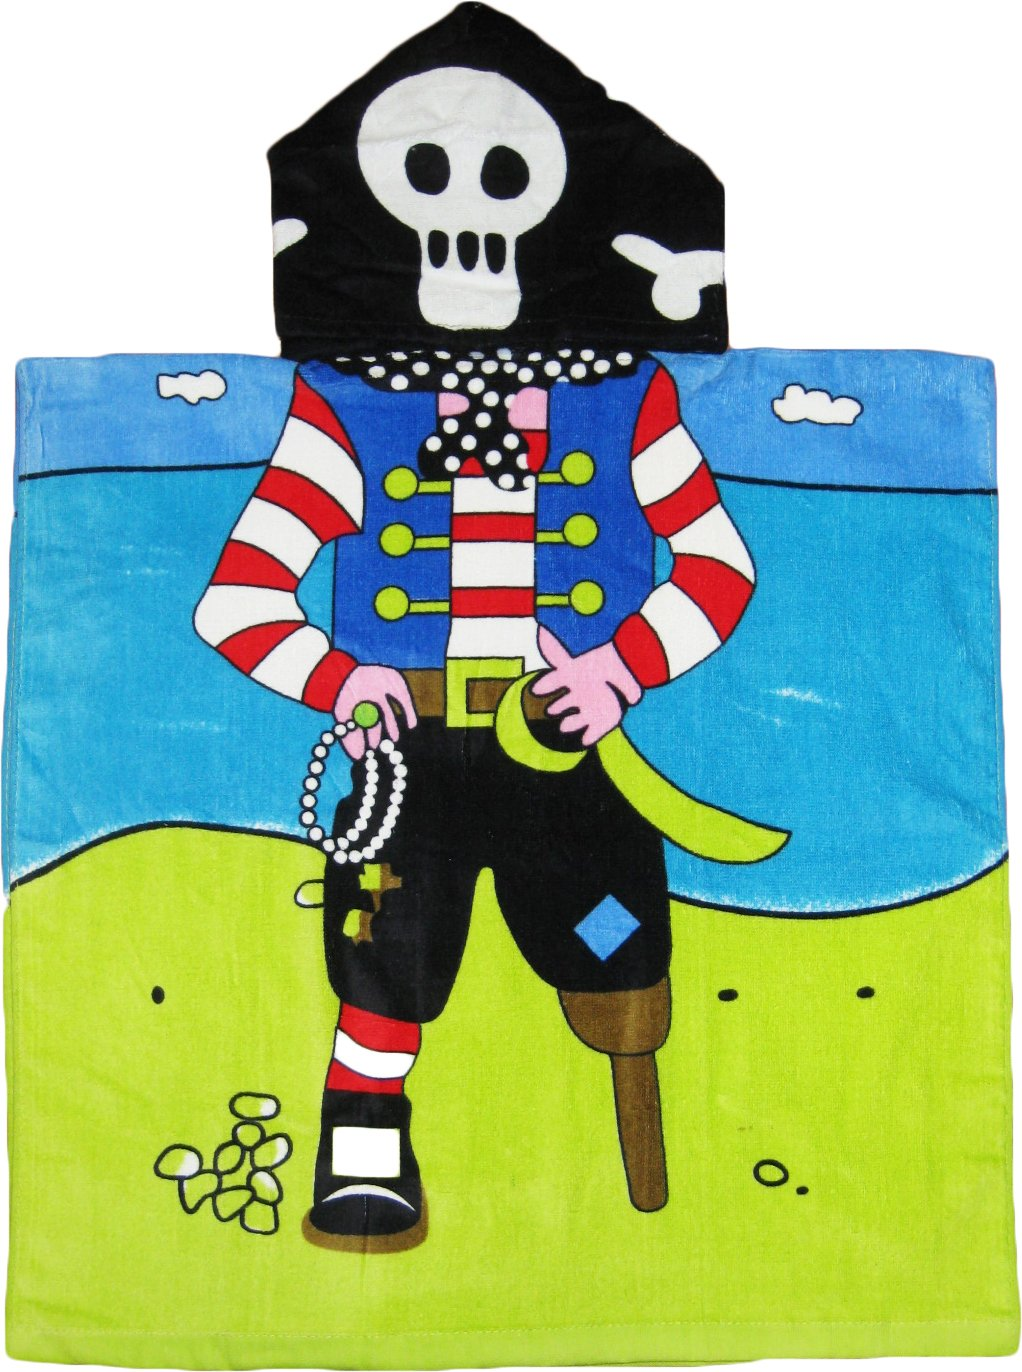 Kreative Kids Pirate 100% Cotton Poncho Style Hooded Bath & Beach Towel with Colorful Double Sized Design